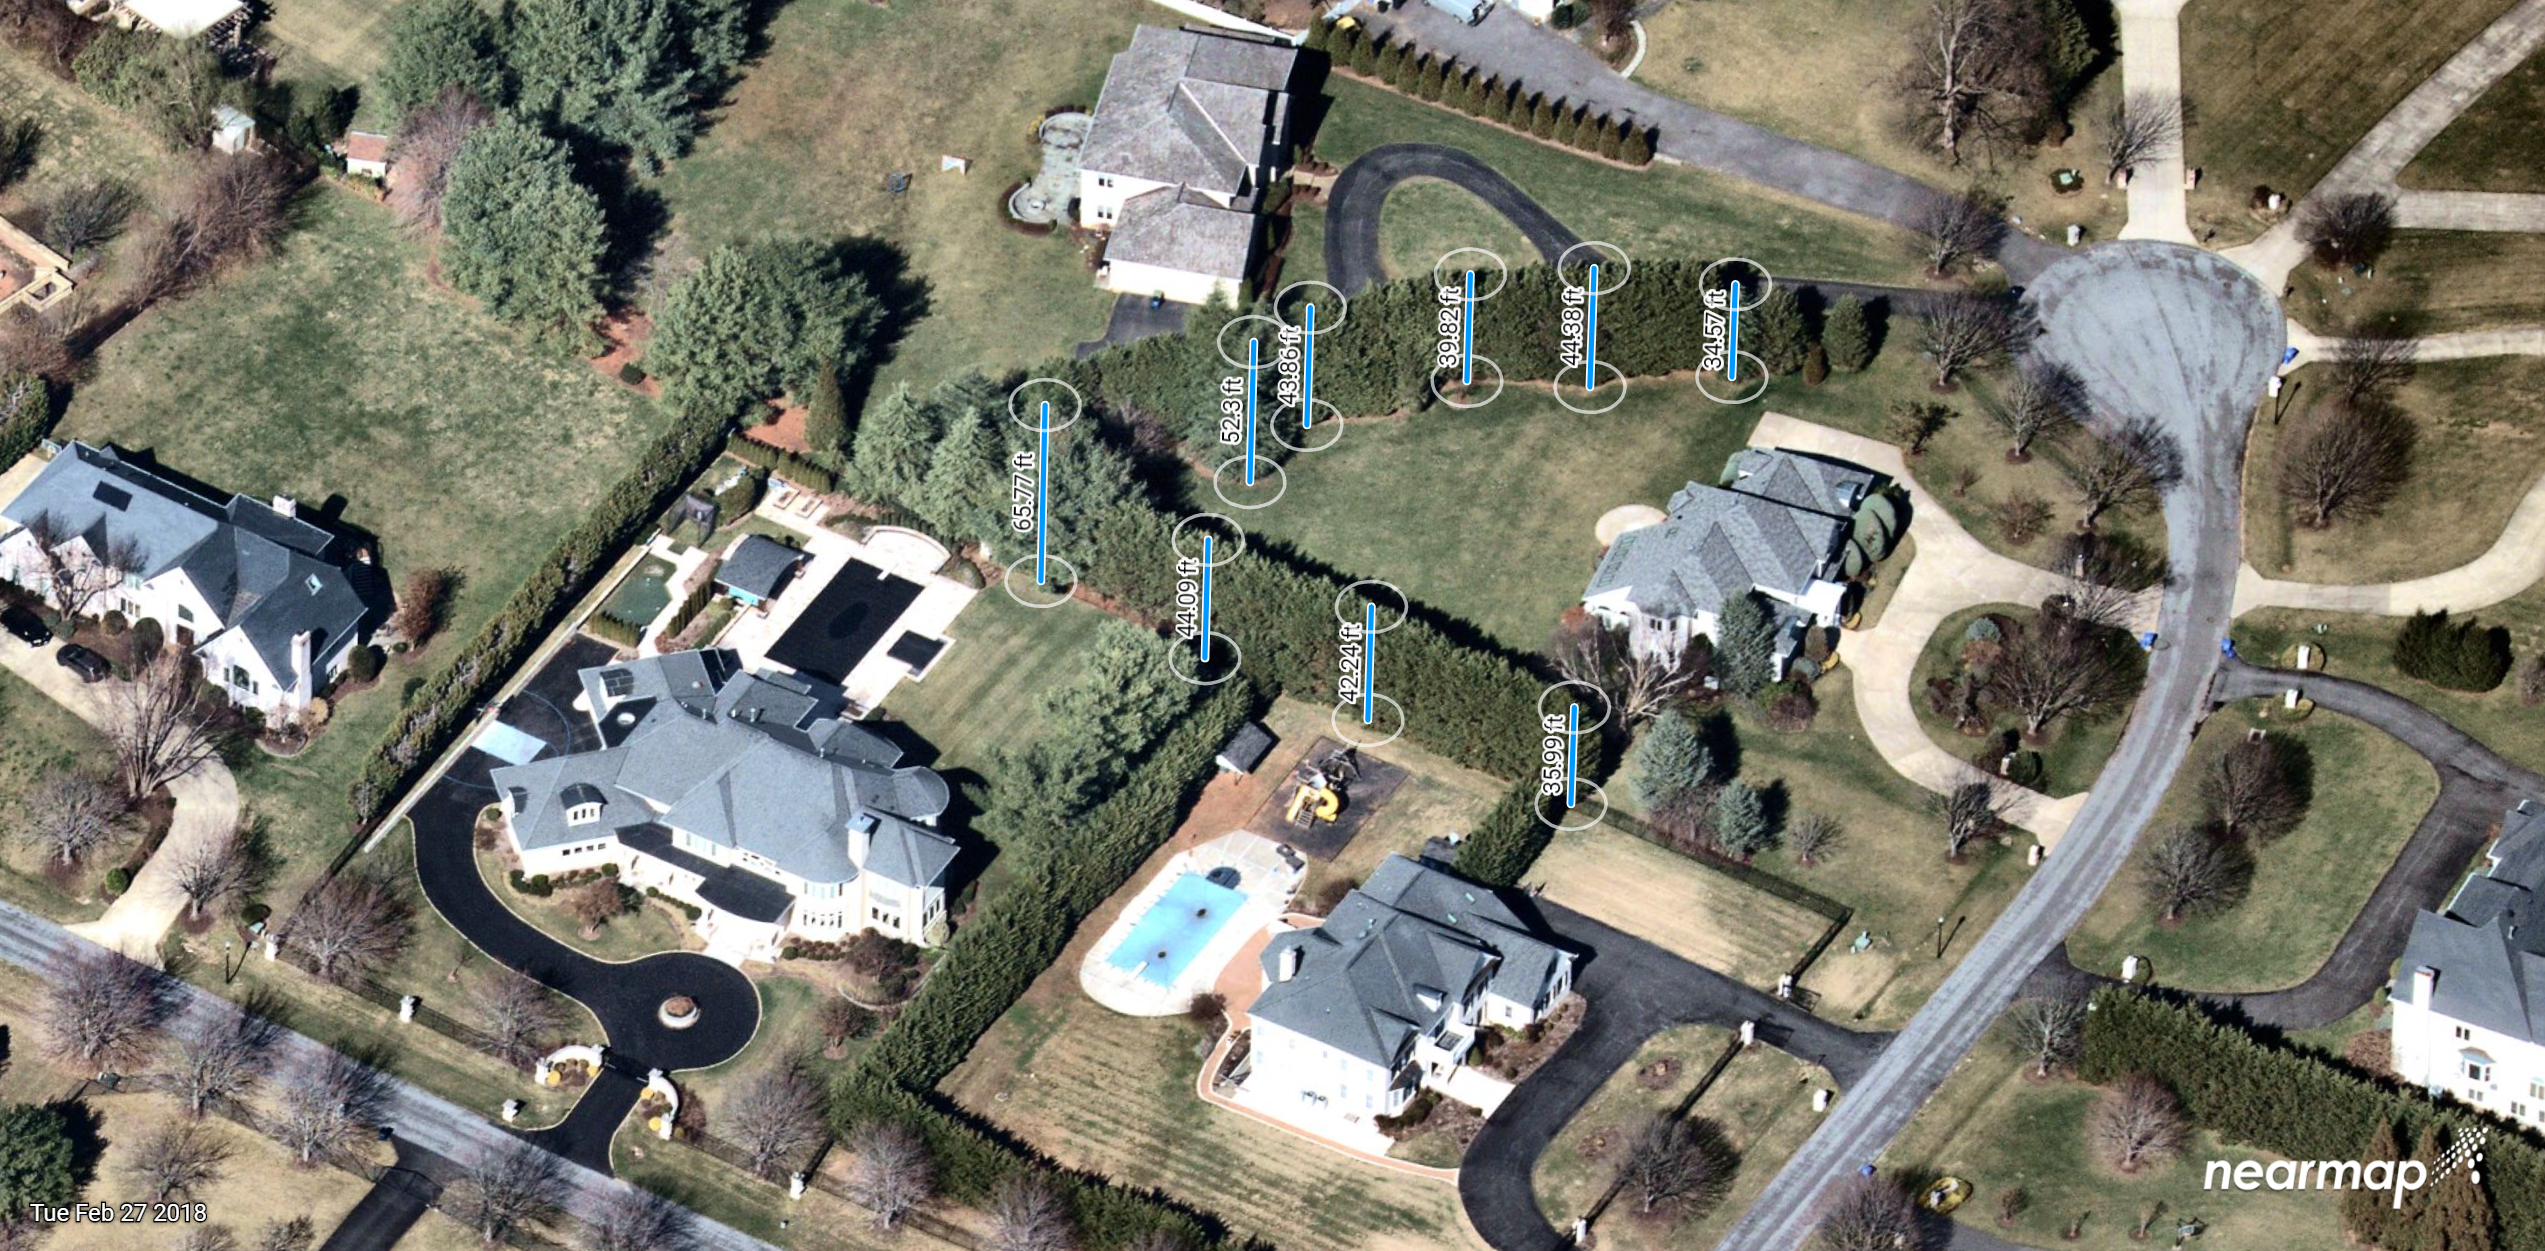 High-res aerial imagery solutions for landscapers